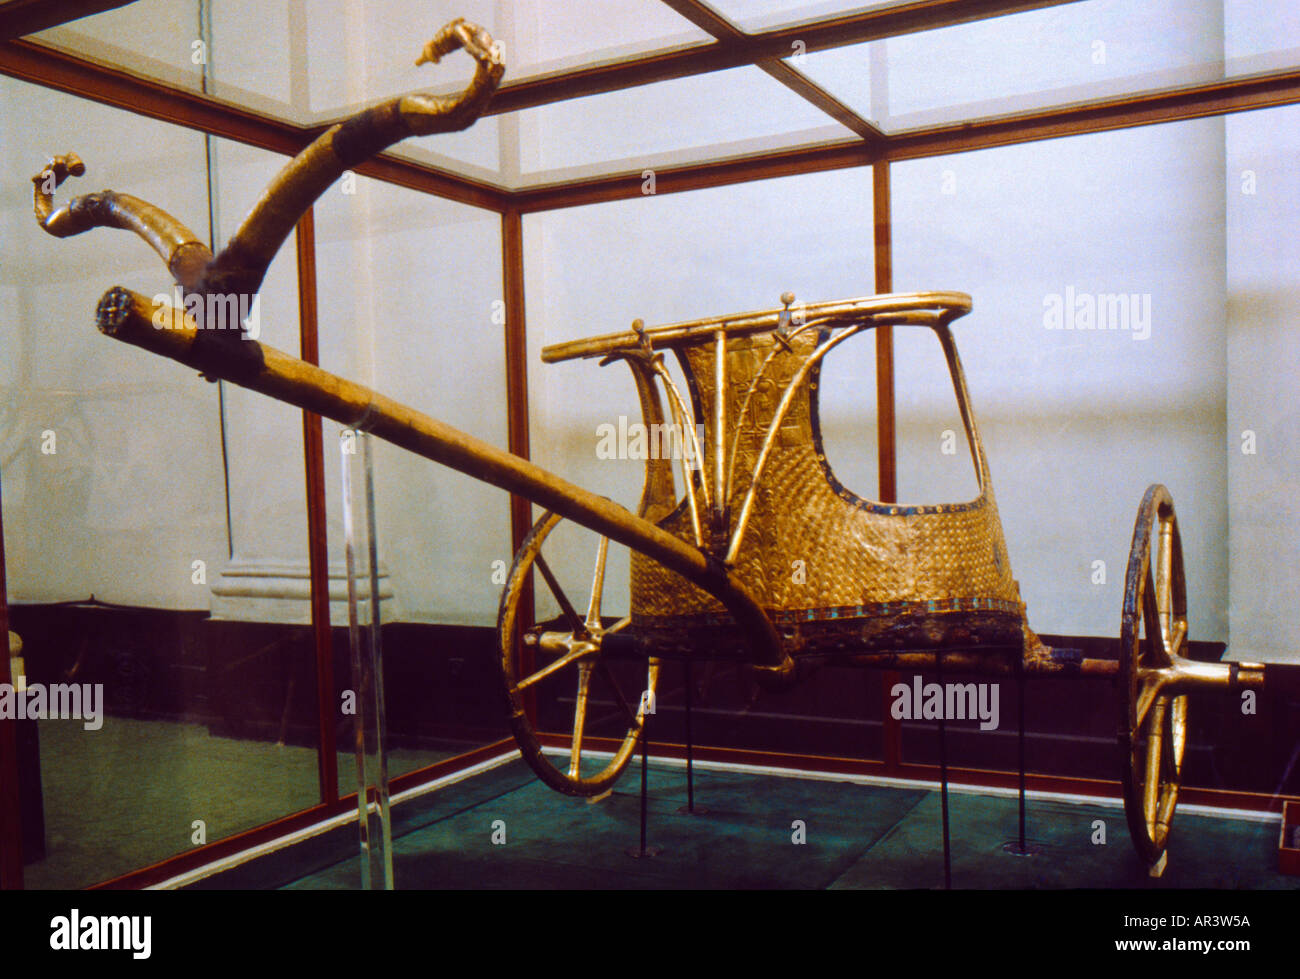 Cairo Egypt Golden Chariot Of King Tutankhamun - Stock Image